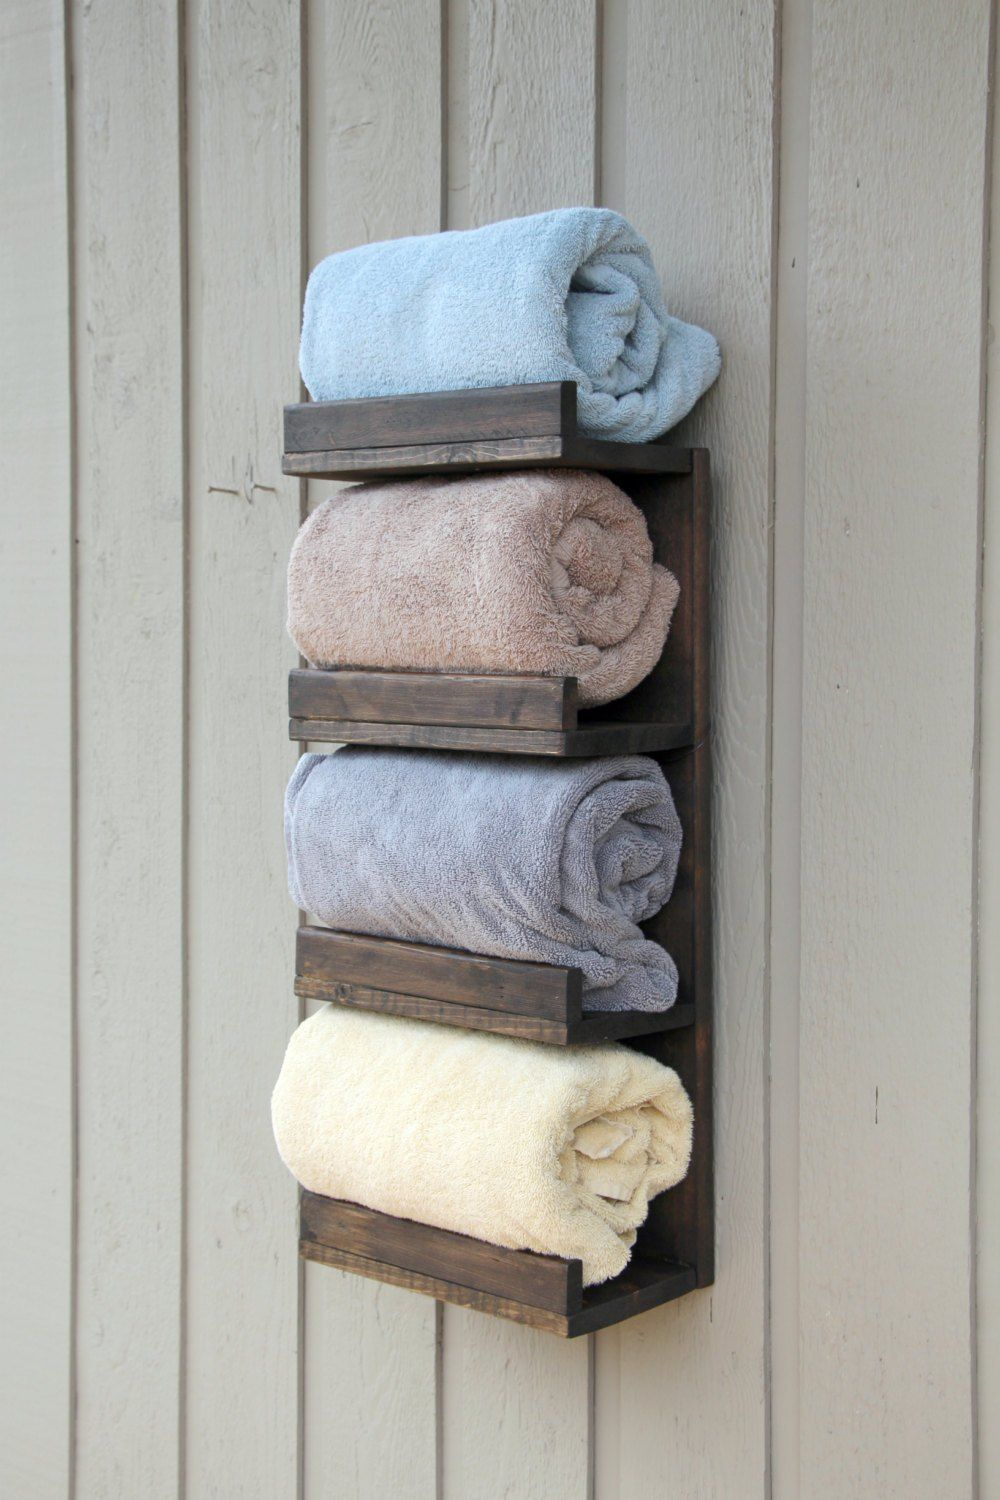 41 Inspirations Bath Towel Storage Racks Ideas Daily Home List Bath Towel Storage Towel Rack Bathroom Bathroom Towel Storage